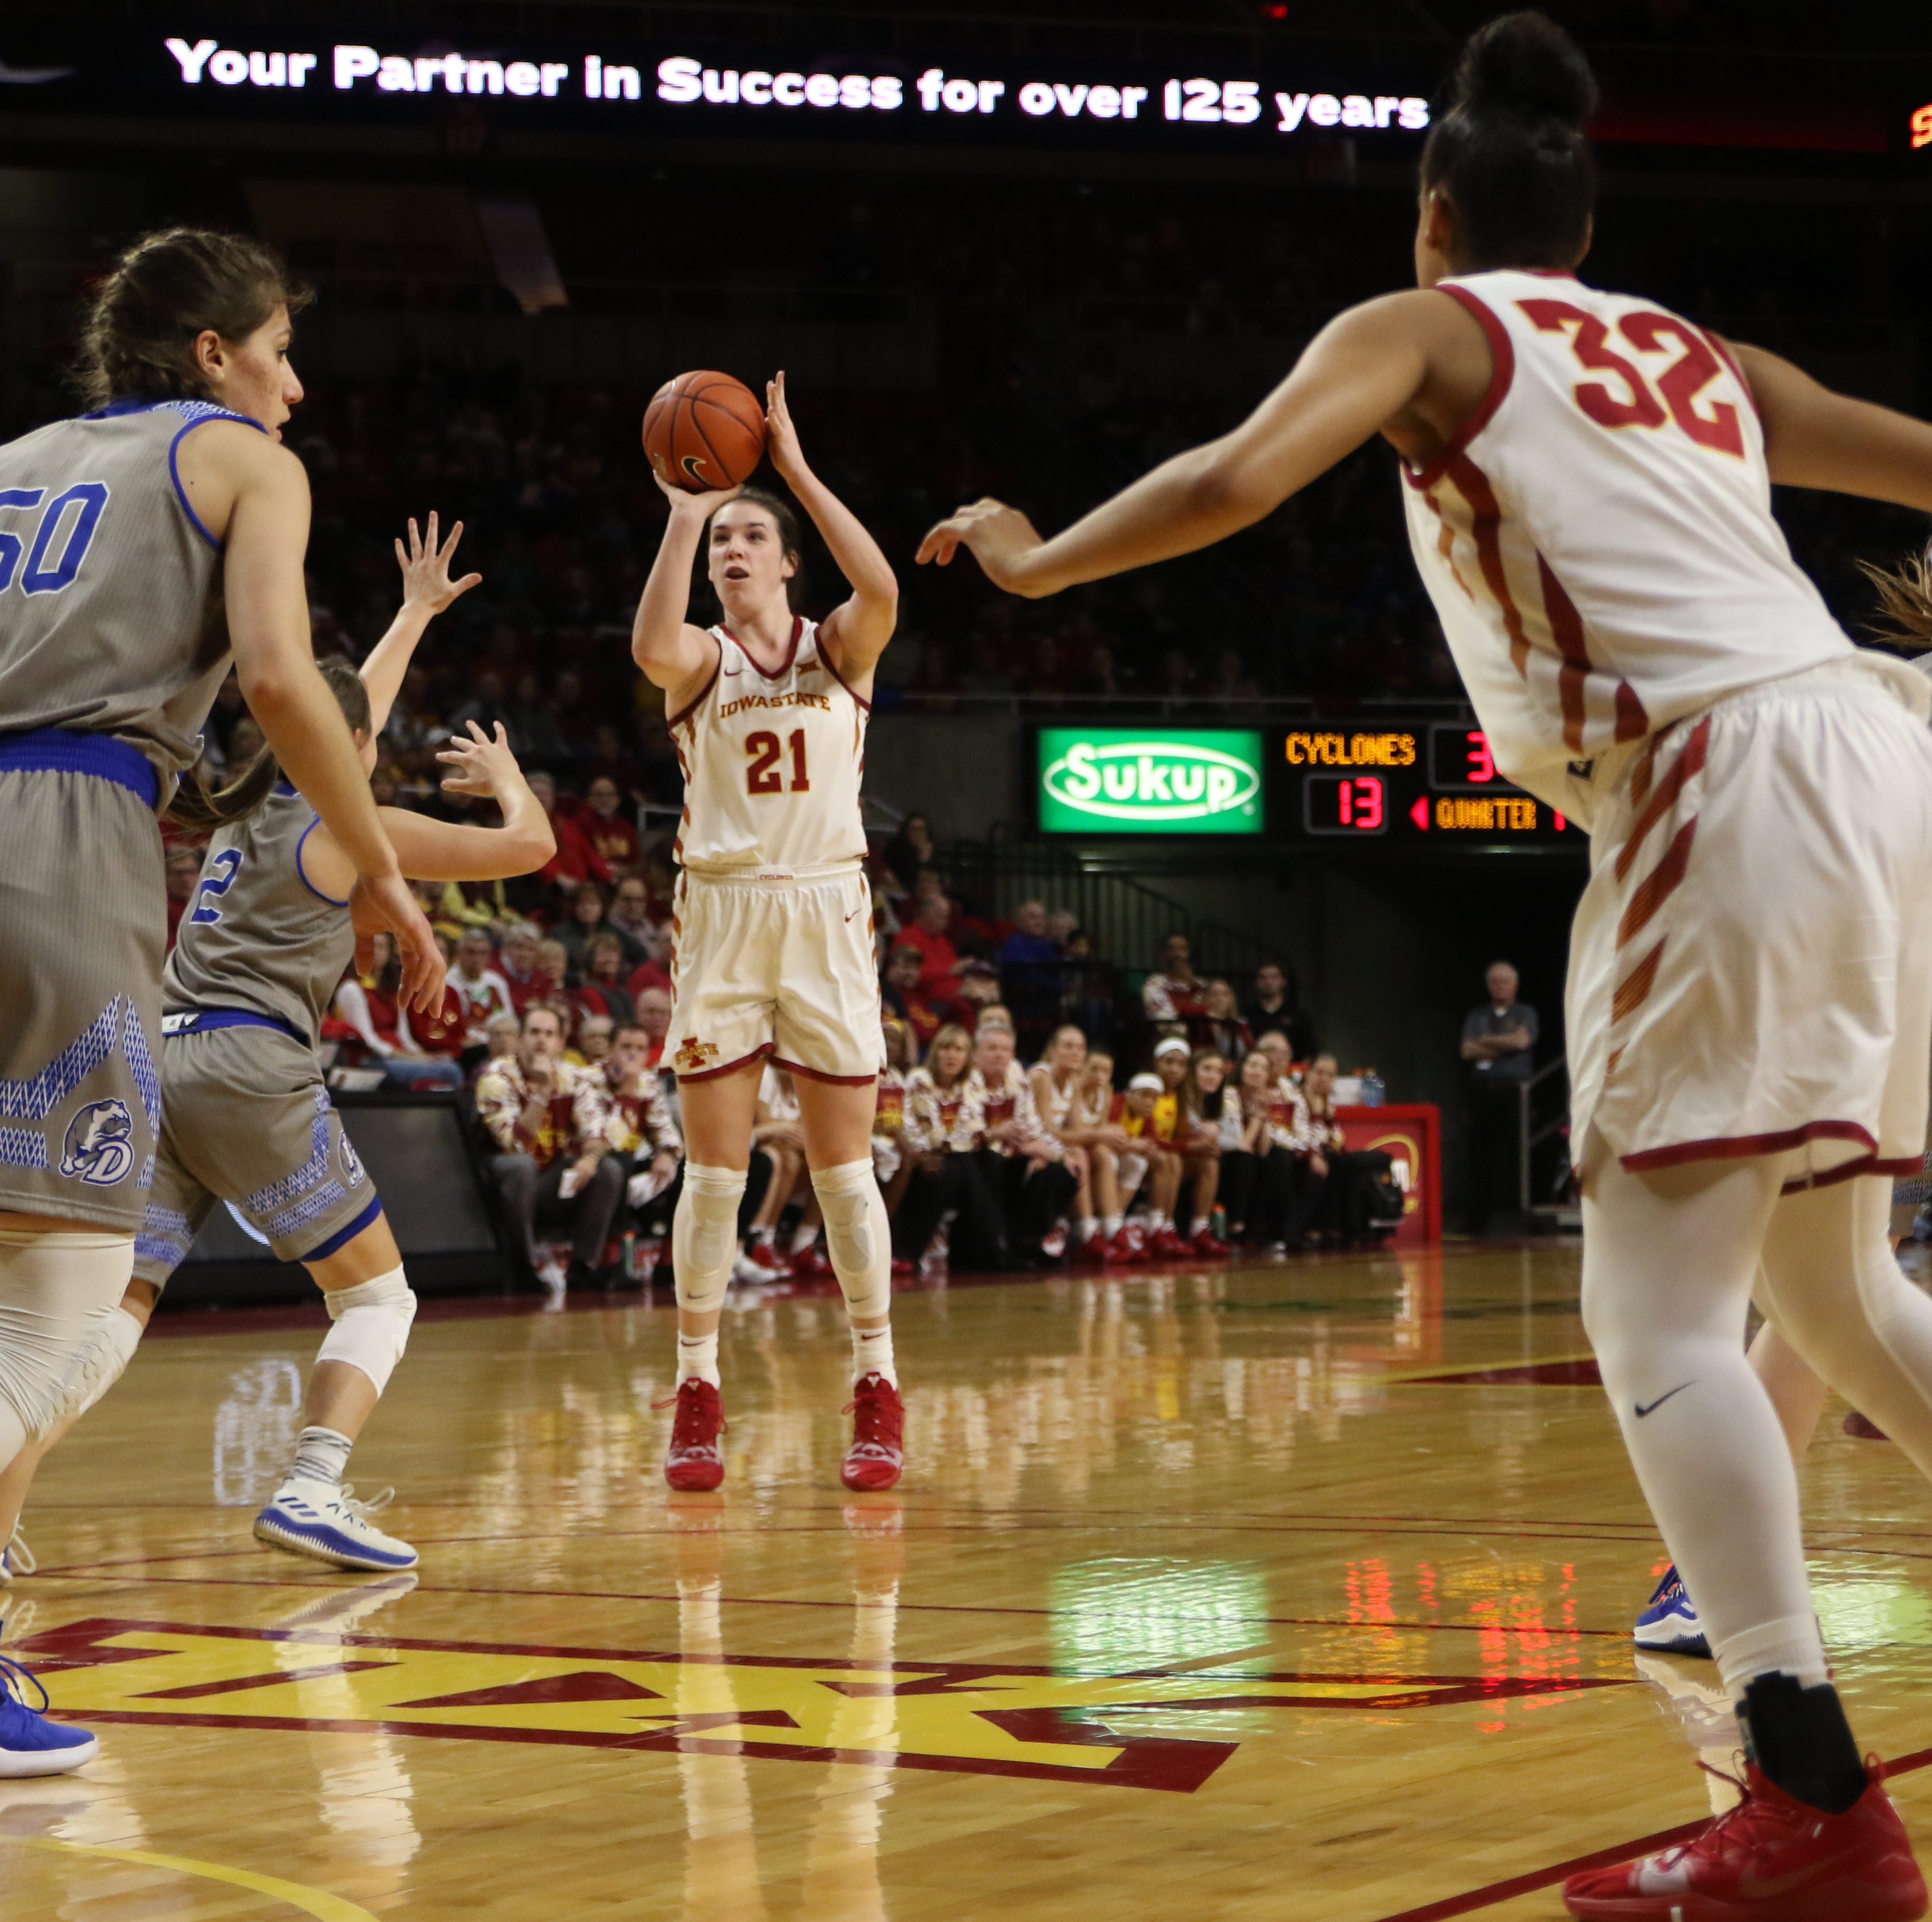 Iowa State continues dominance at home, holding off No. 25 Drake